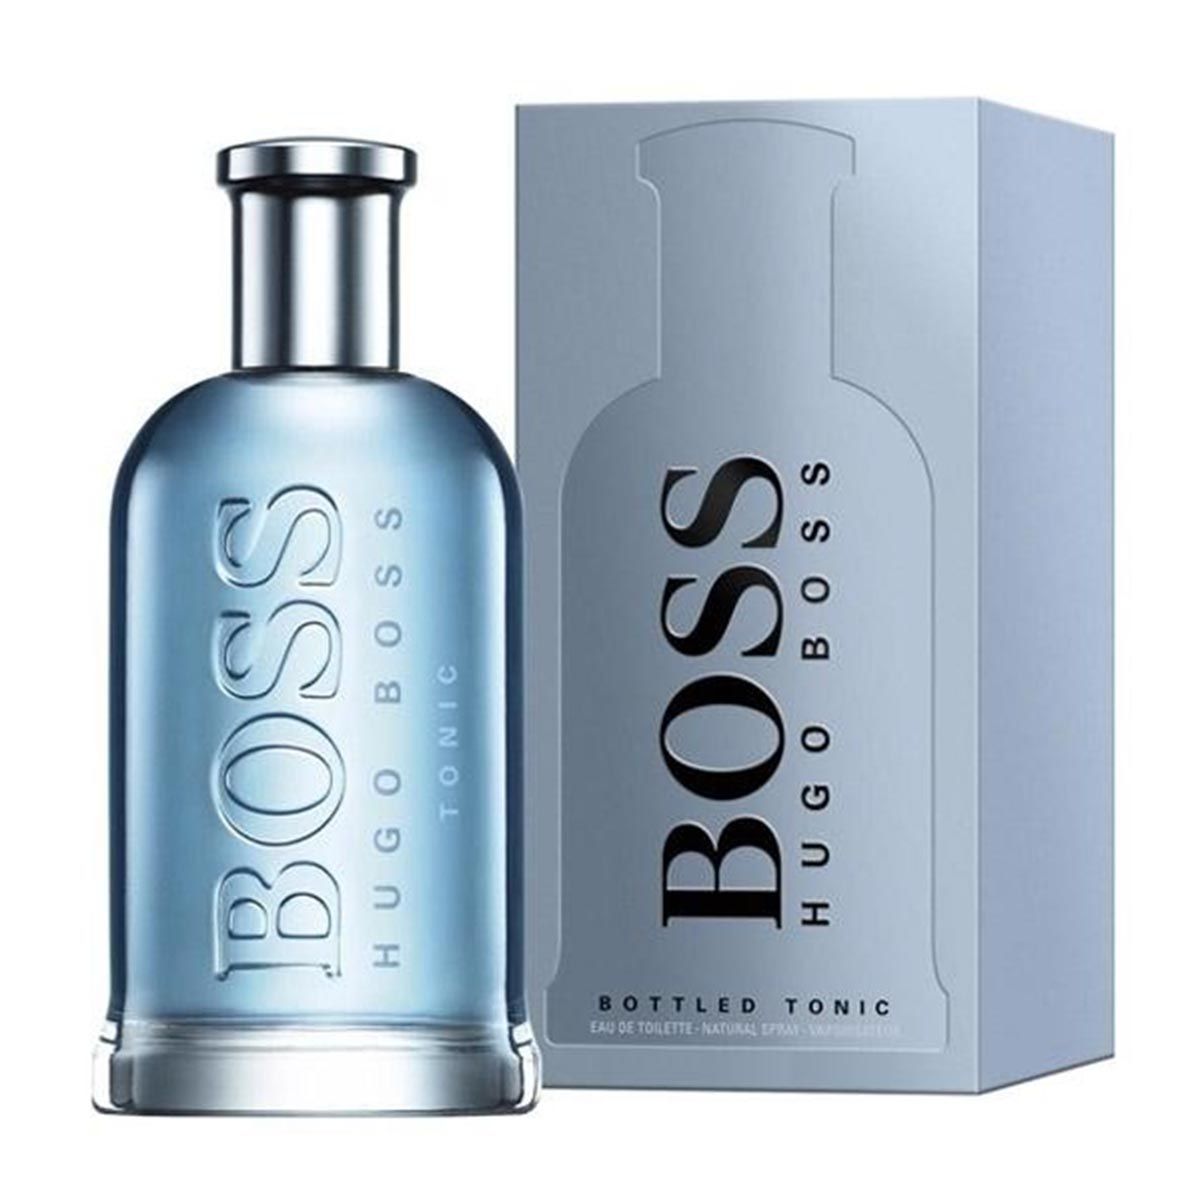 Hugo boss bottled tonic eau de toilette 50ml vaporizador